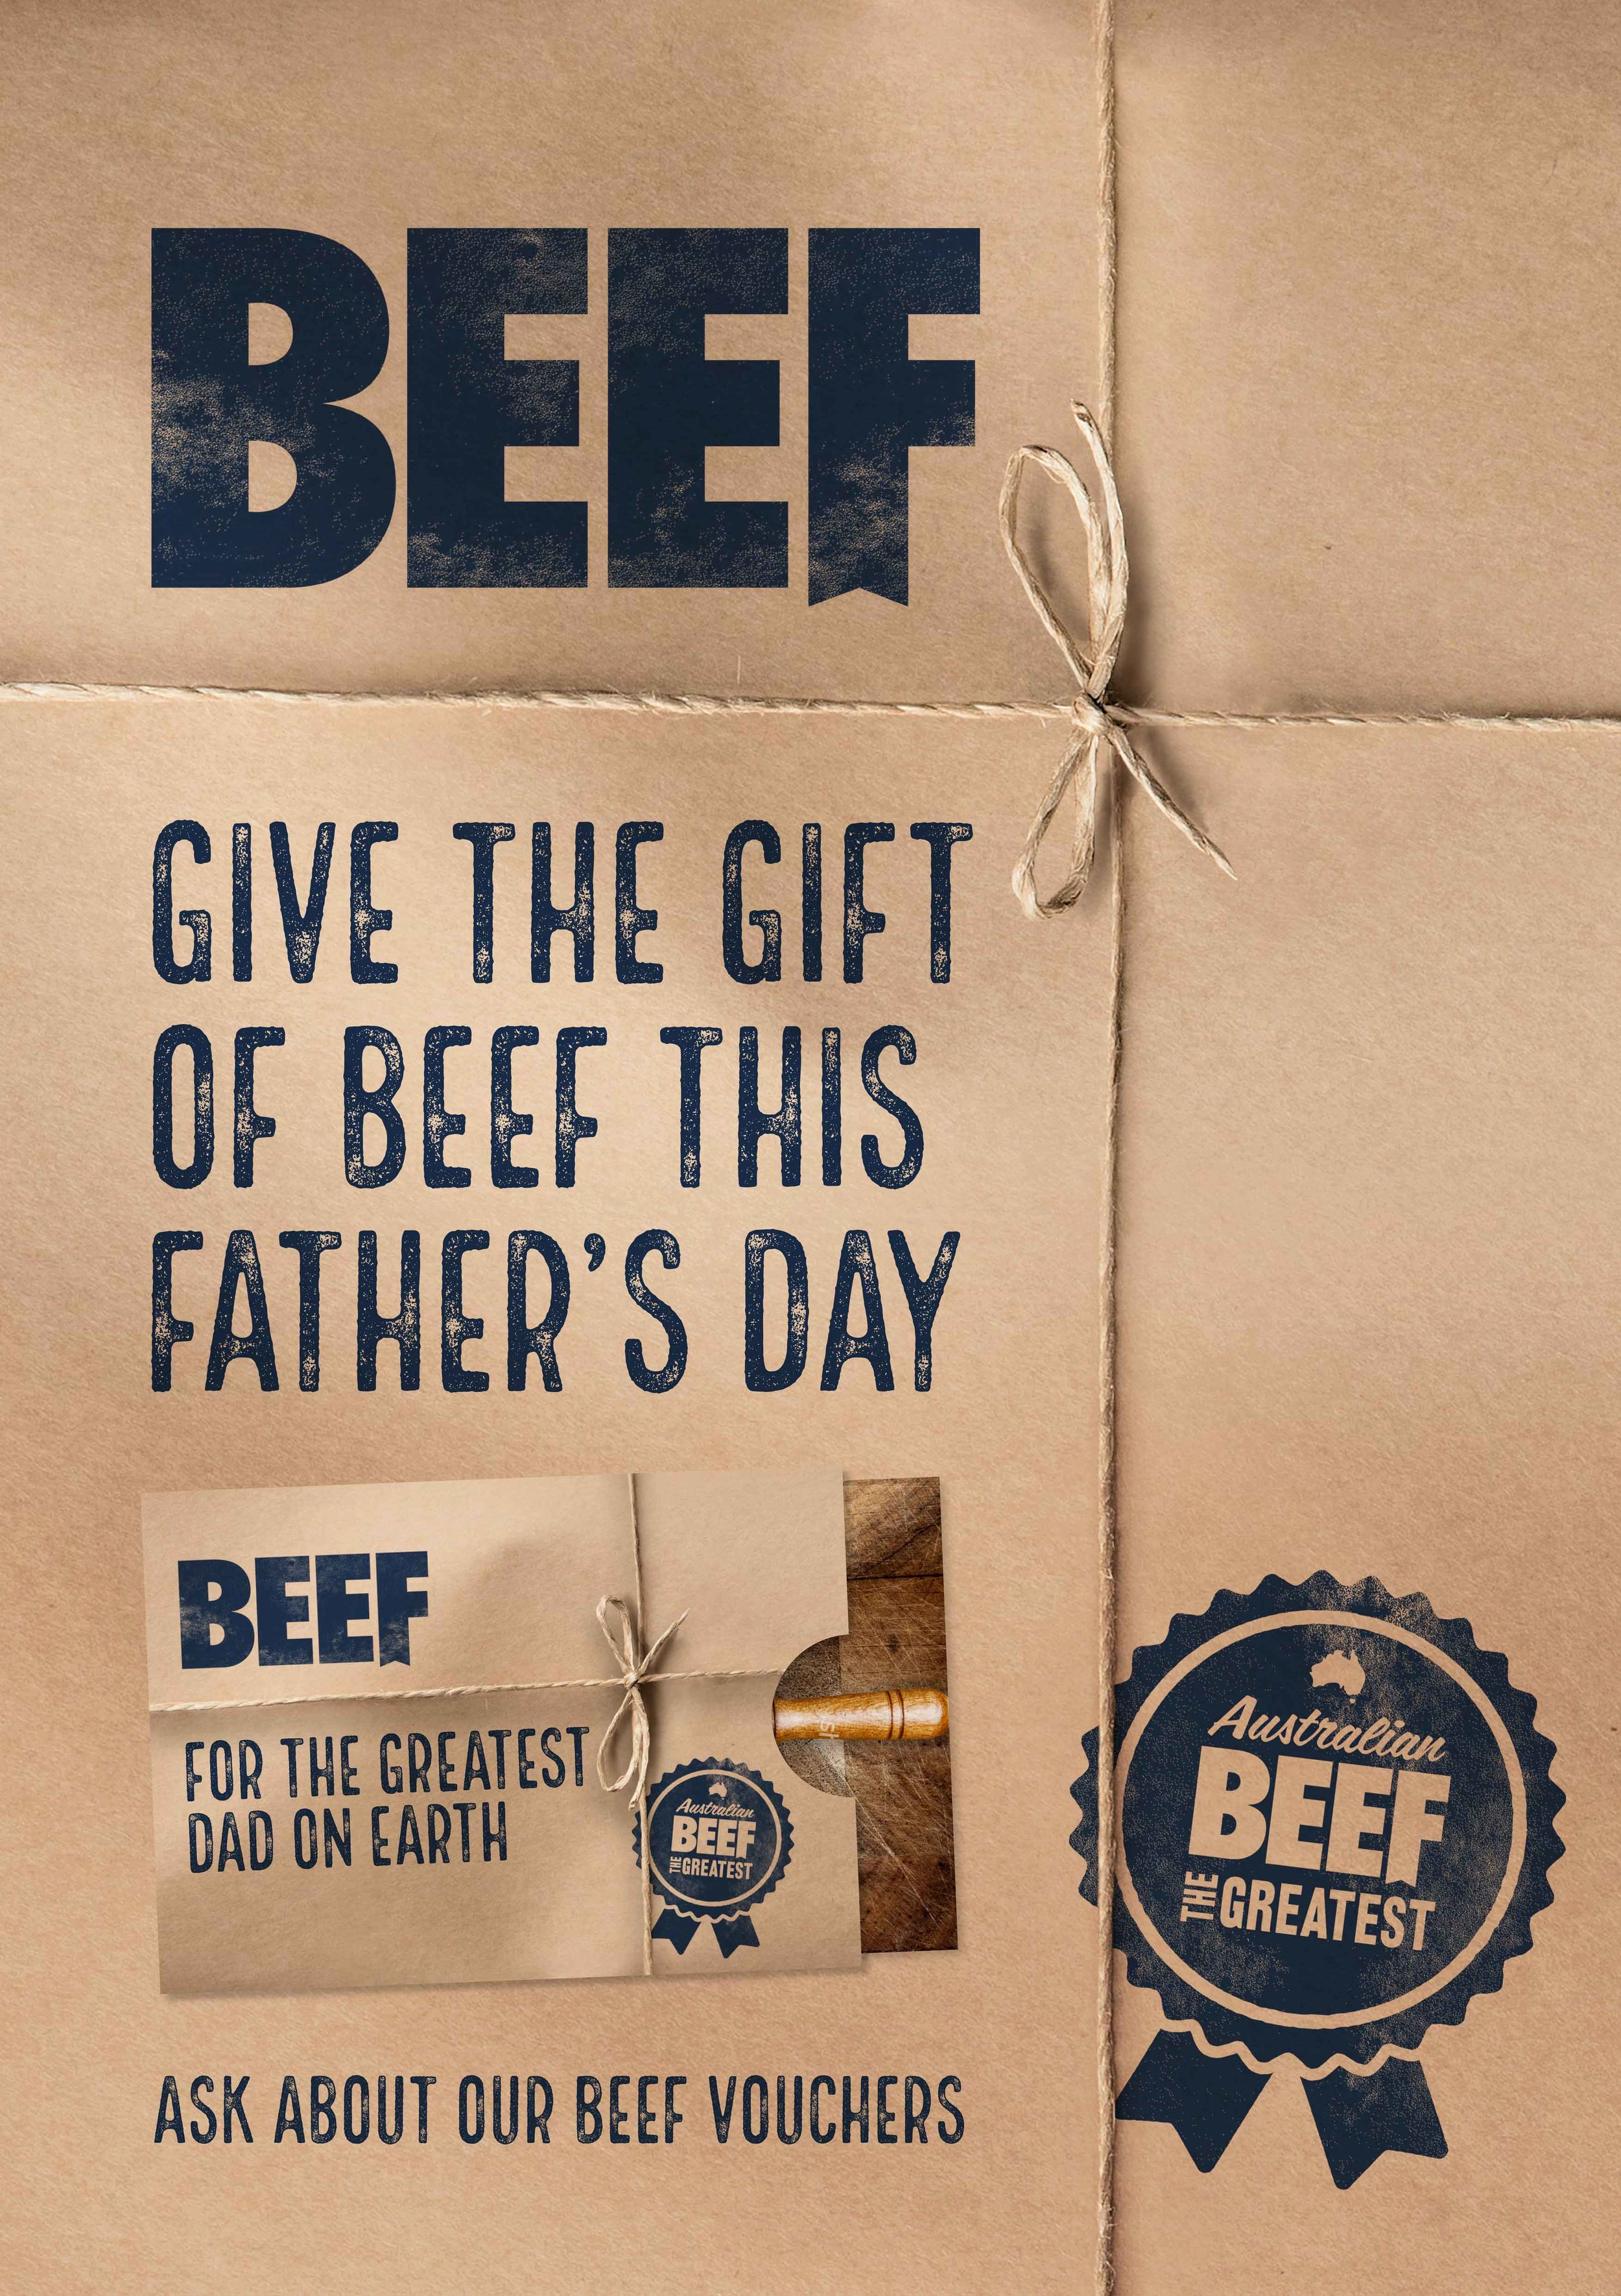 Beef. The Greatest. - Father's Day In-Store Poster